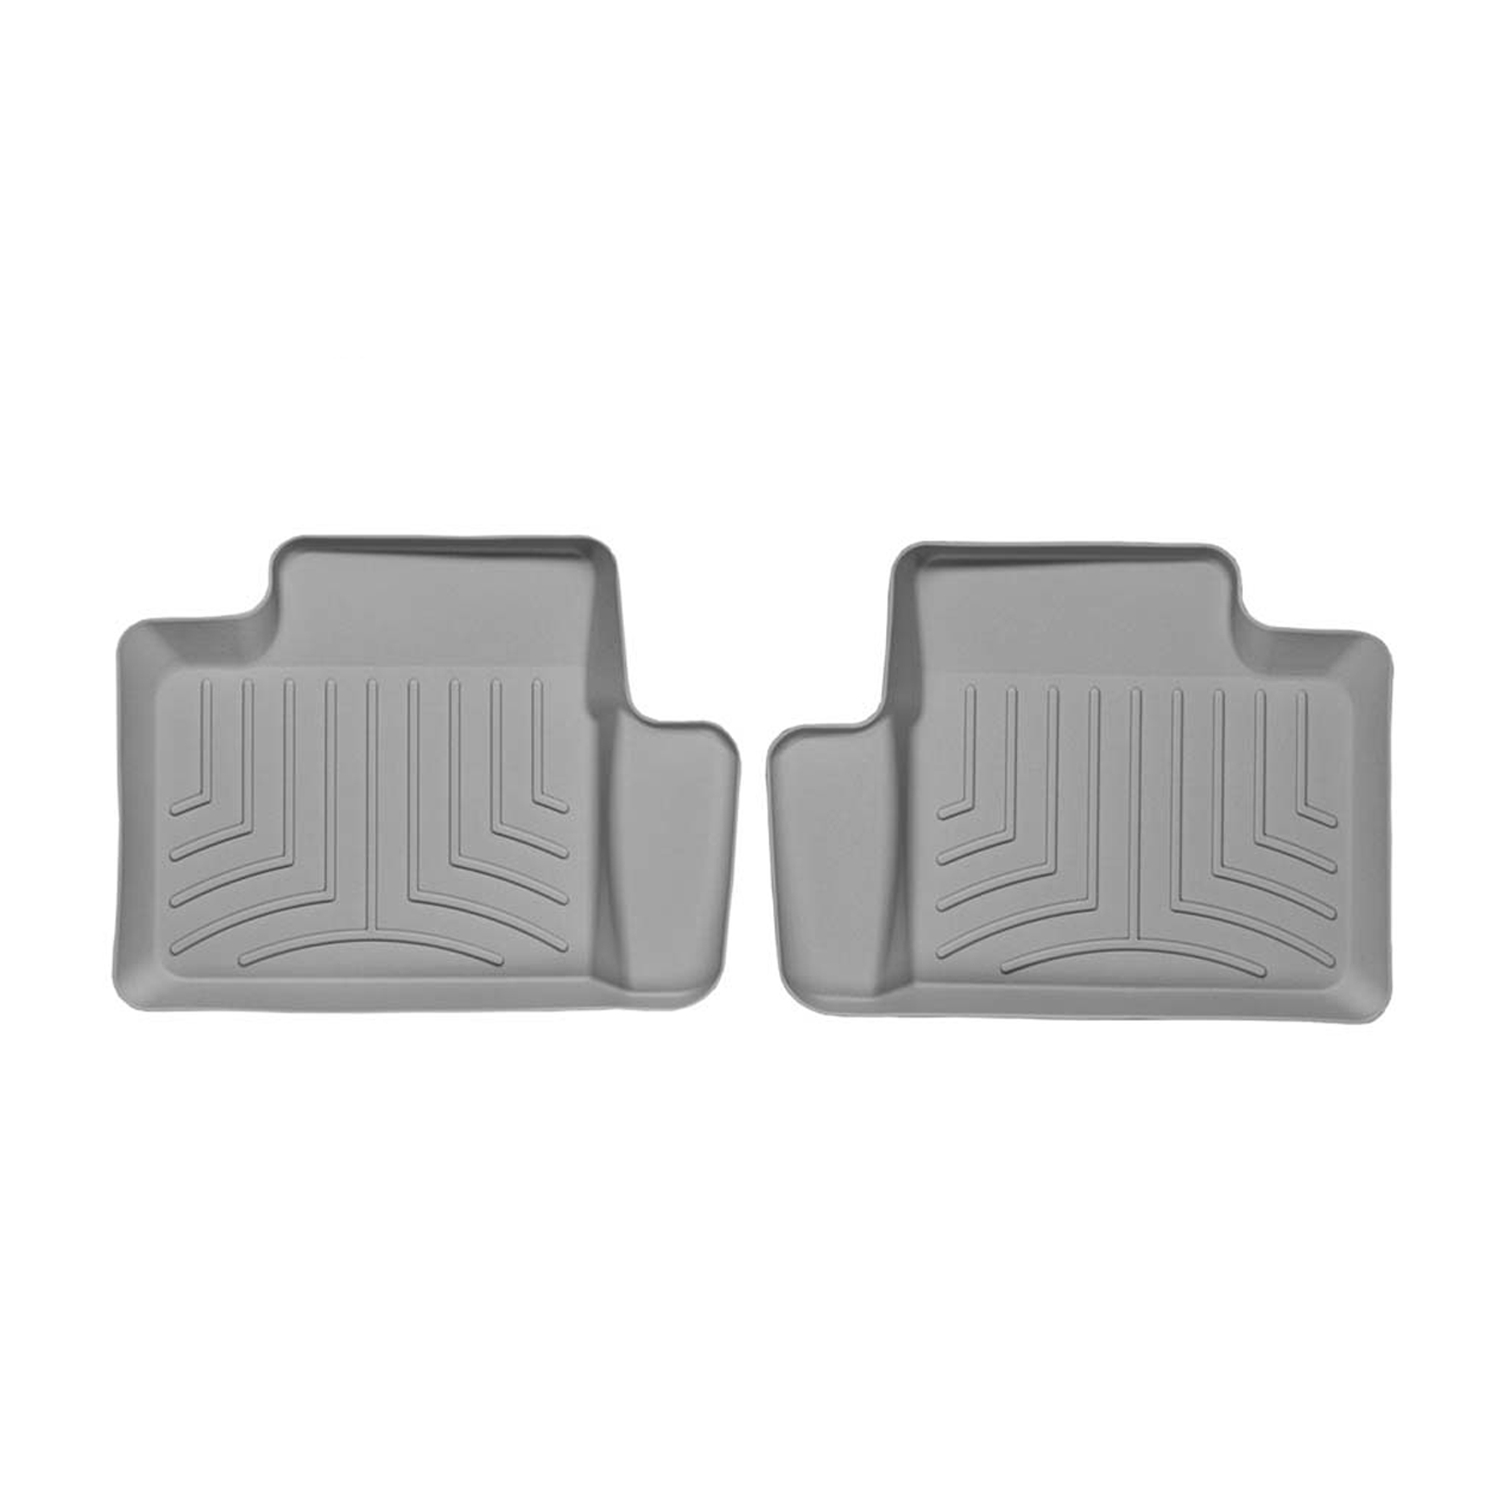 Weathertech (USA) WTC461414 Floor Liner DigitalFit (R) Molded Fit; Raised Channels With A Lower Reservoir; Gray; High-Density Tri-Extruded Material; 1 Piece - image 1 de 1